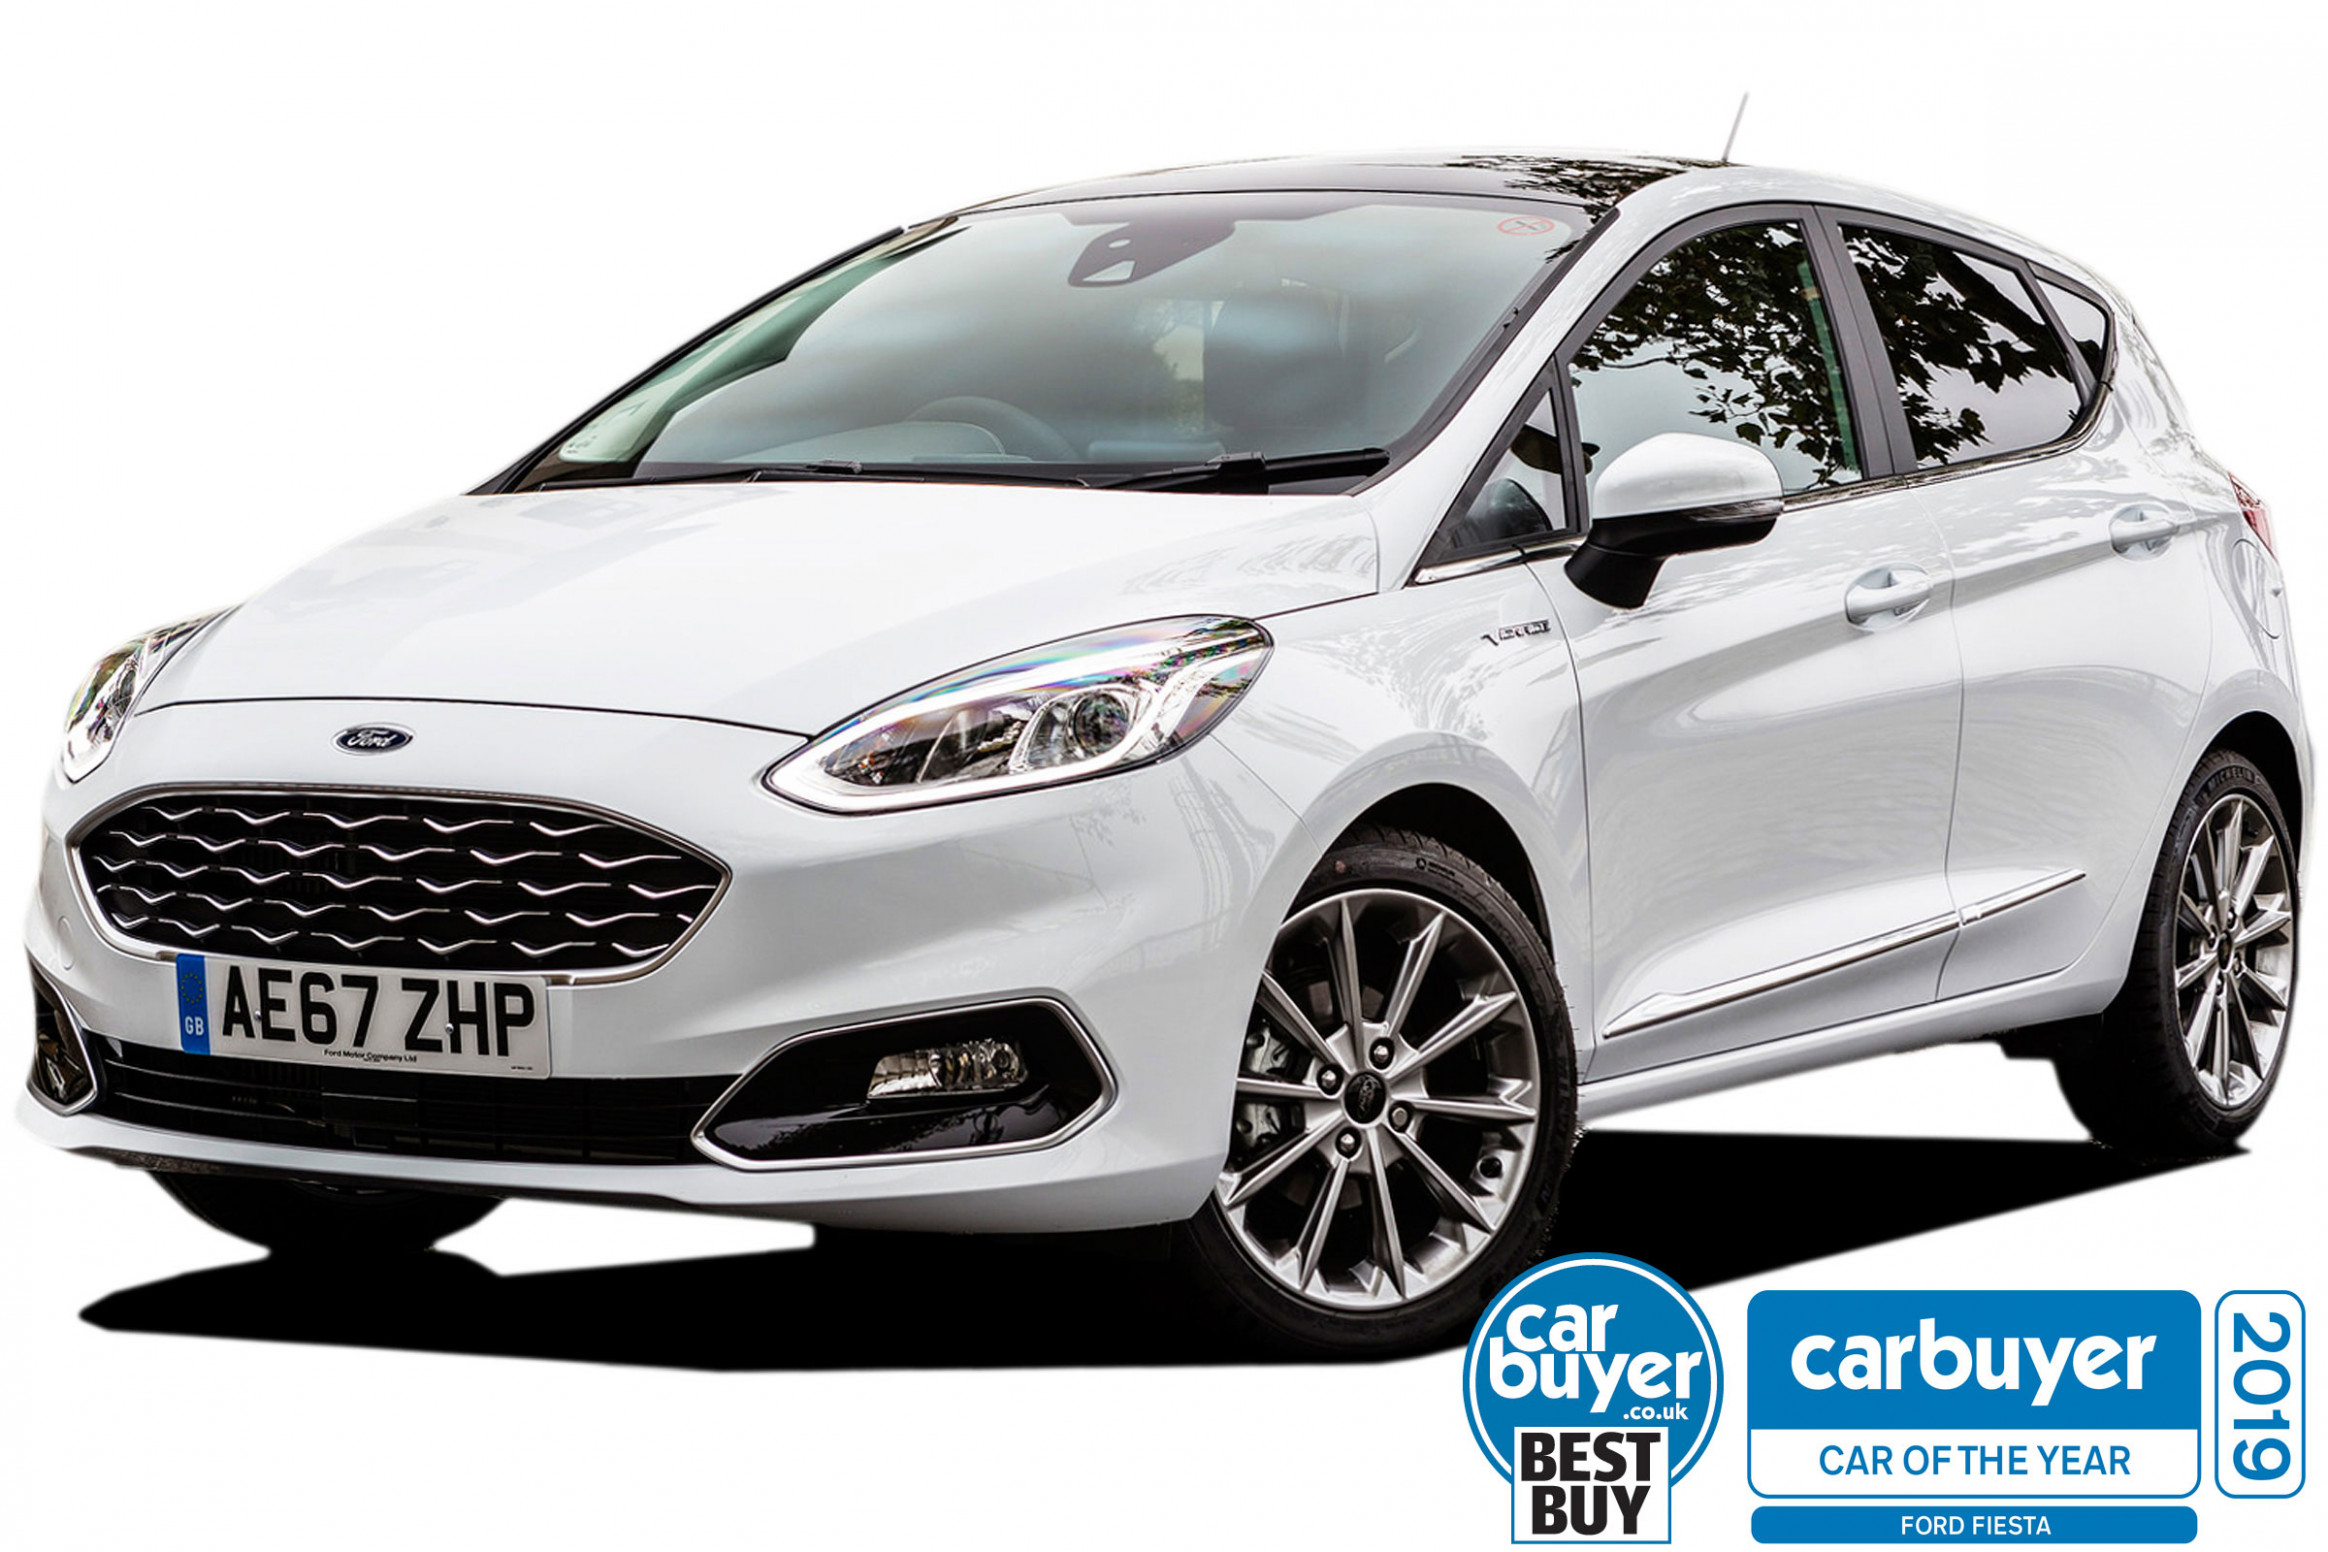 Ford Fiesta hatchback 8 review | Carbuyer